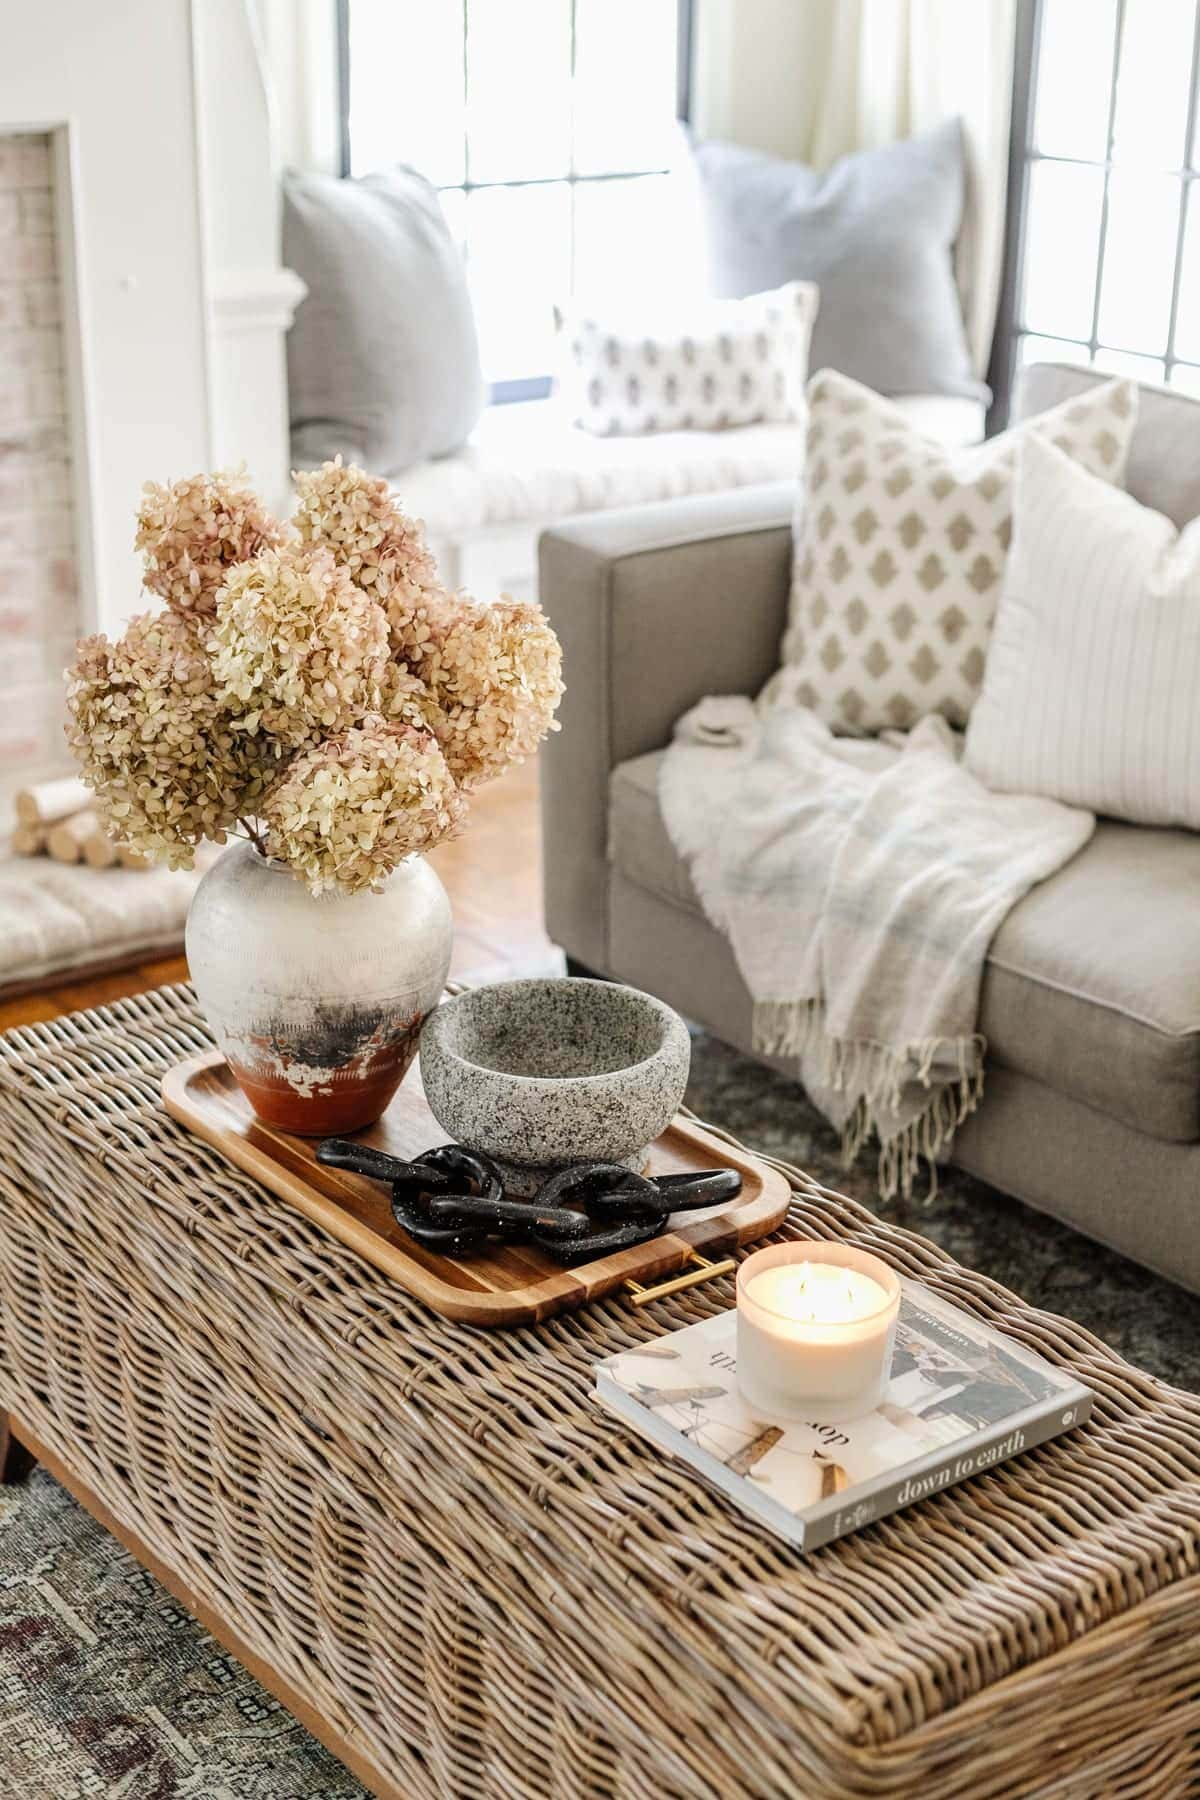 coffee table decor with dried hydrangeas and DIY decorative chain using air dry clay